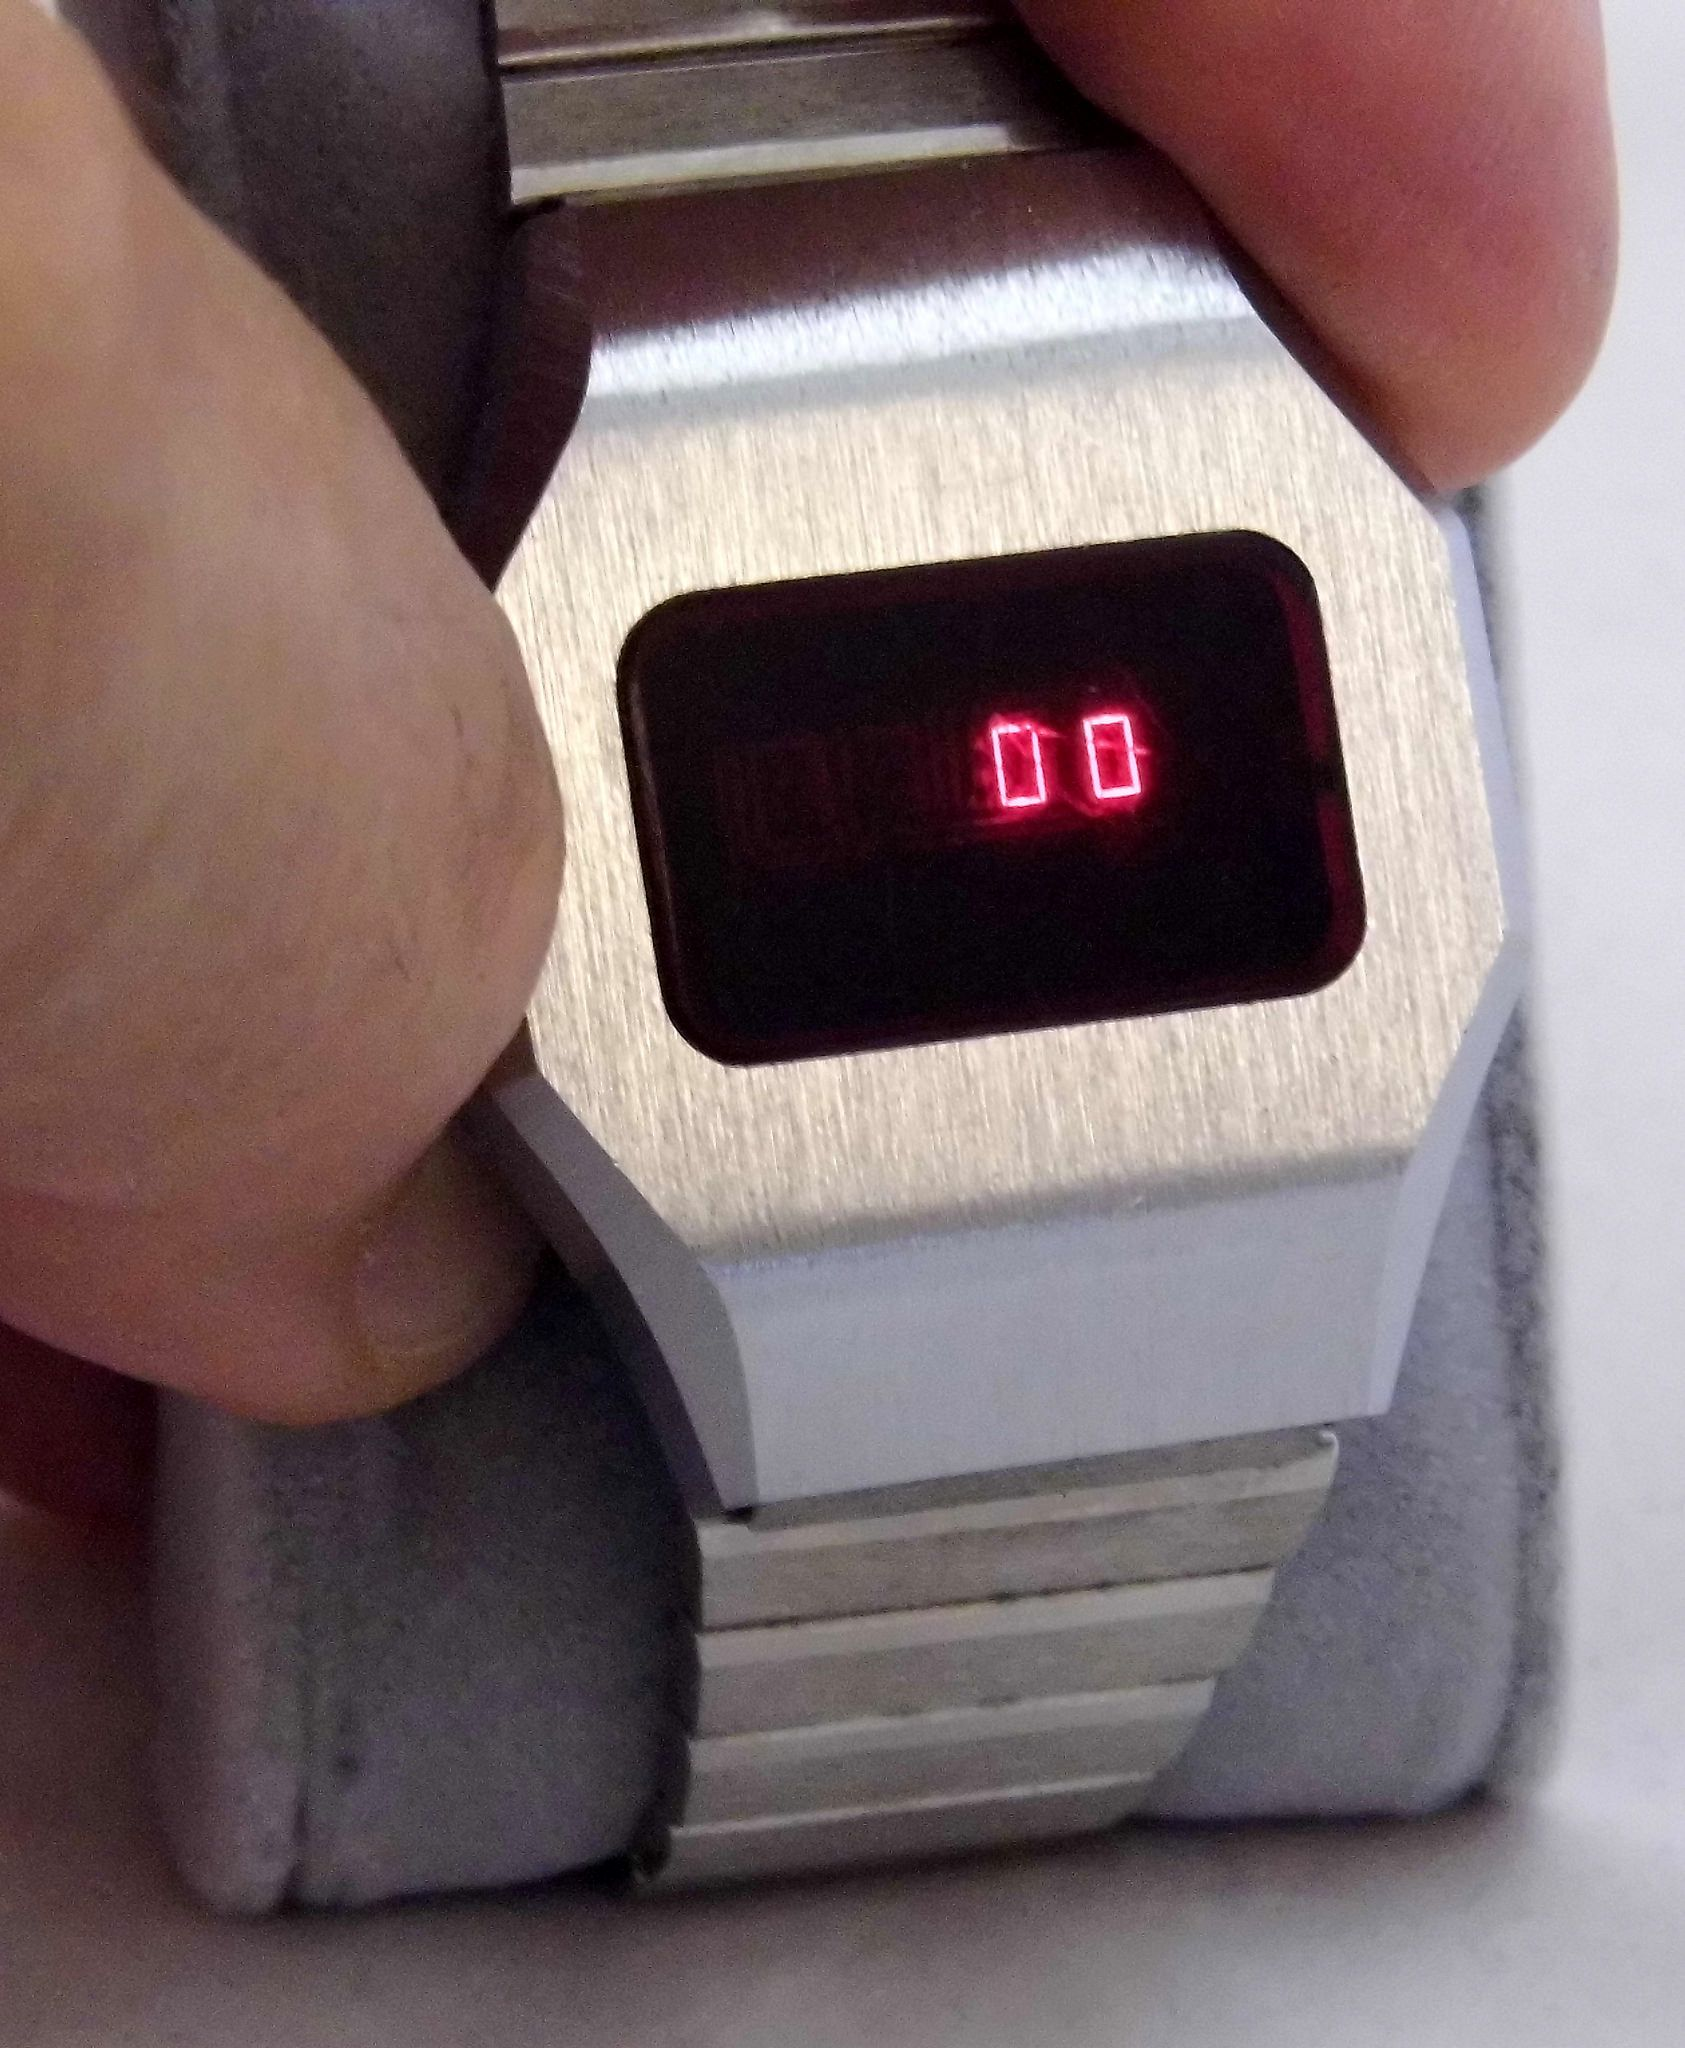 https://flic.kr/p/uH4cAC   Vintage Men's Red LED Wrist Watch With Original Band, Manufacturer Unknown. Case Marked Made In Hong Kong, Circa 1970s